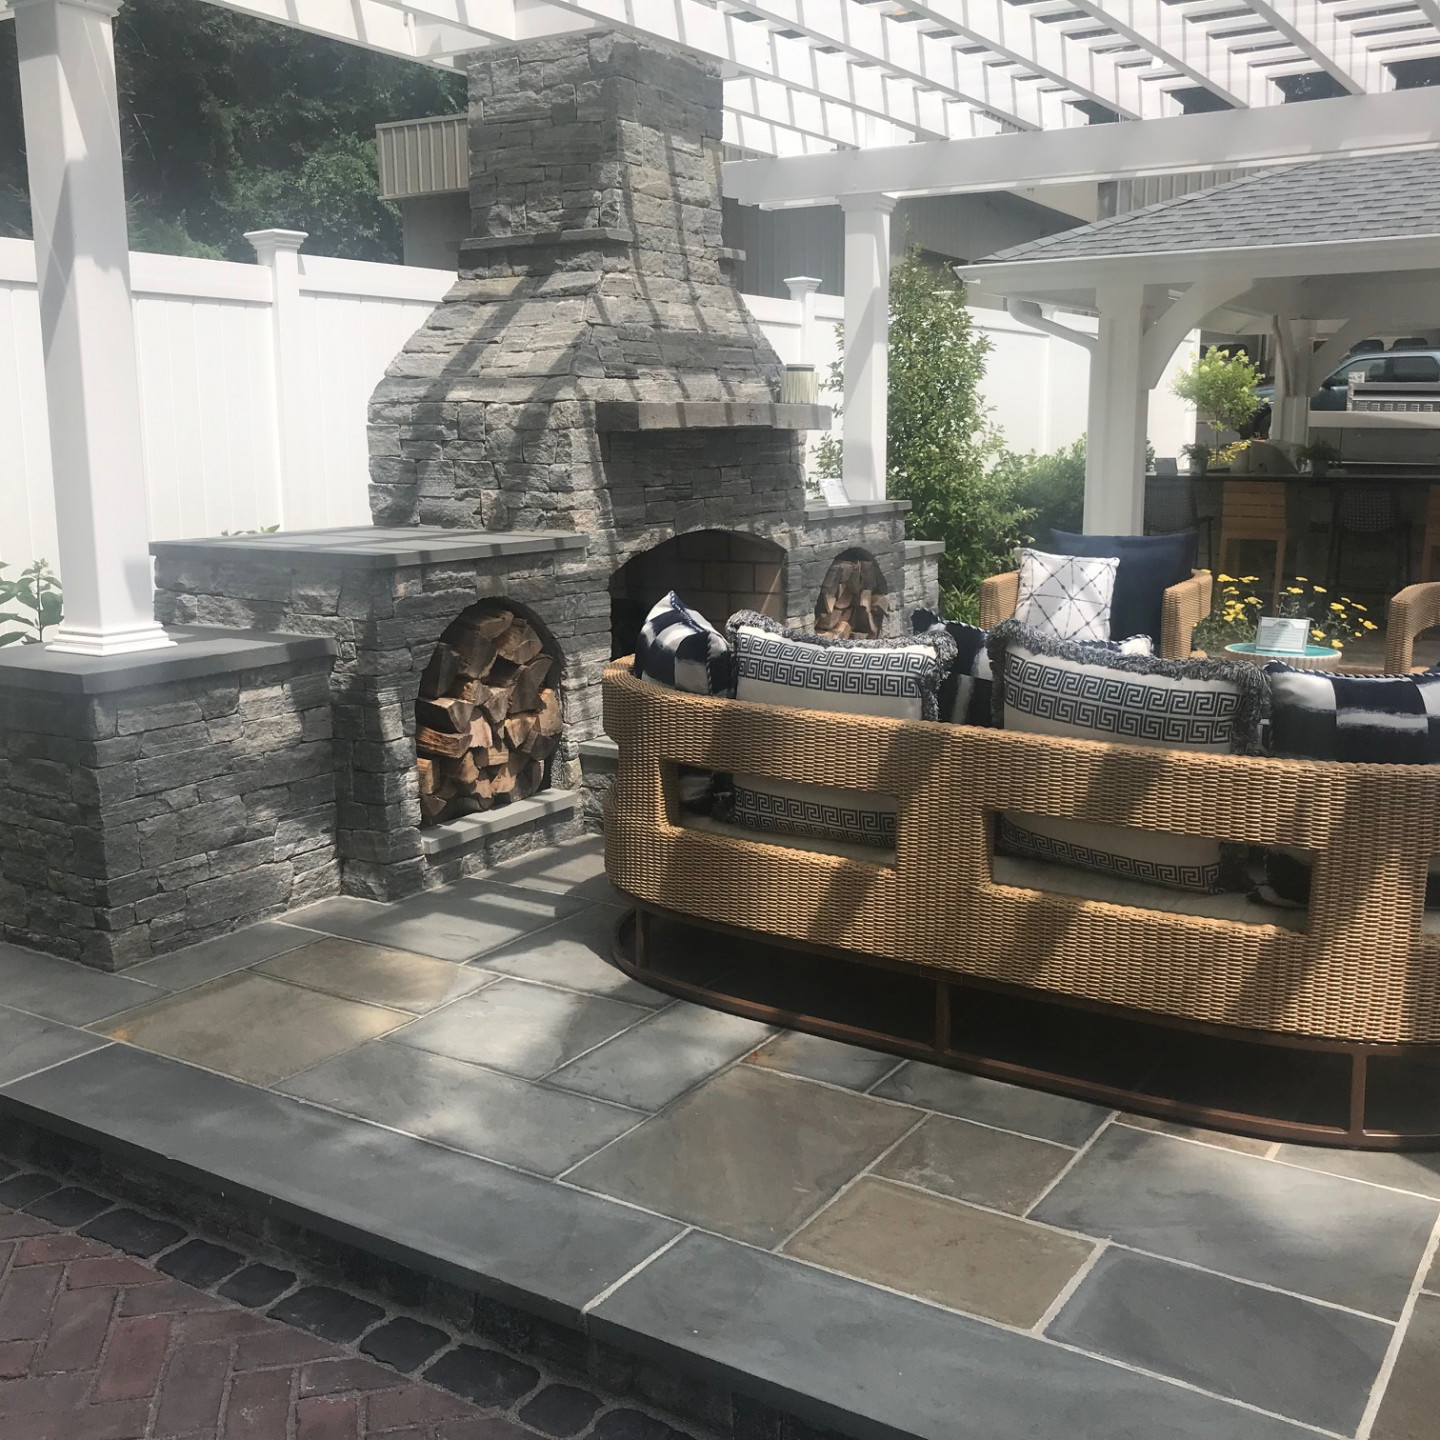 Hometronics Lifestyles Collaborates with Torrison Stone on Outdoor Demo Area